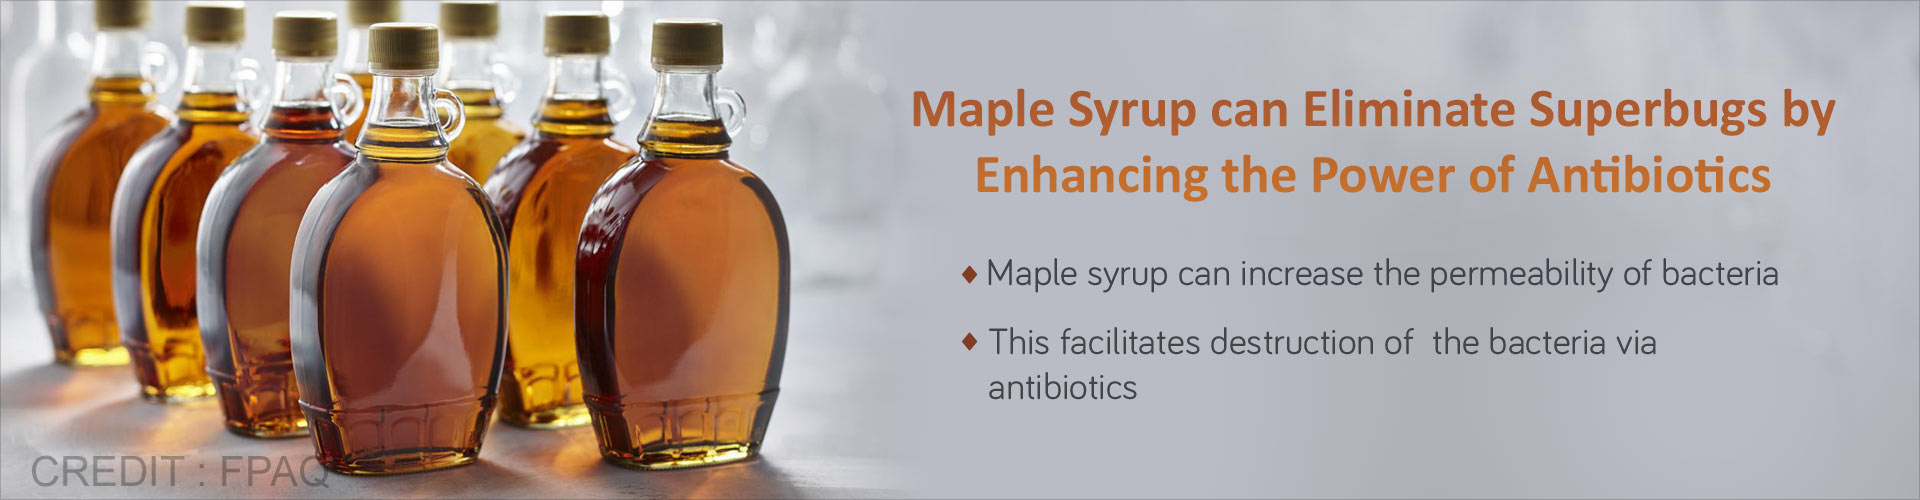 Maple Syrup Extract: A Natural Way to Enhance Antibiotic Action